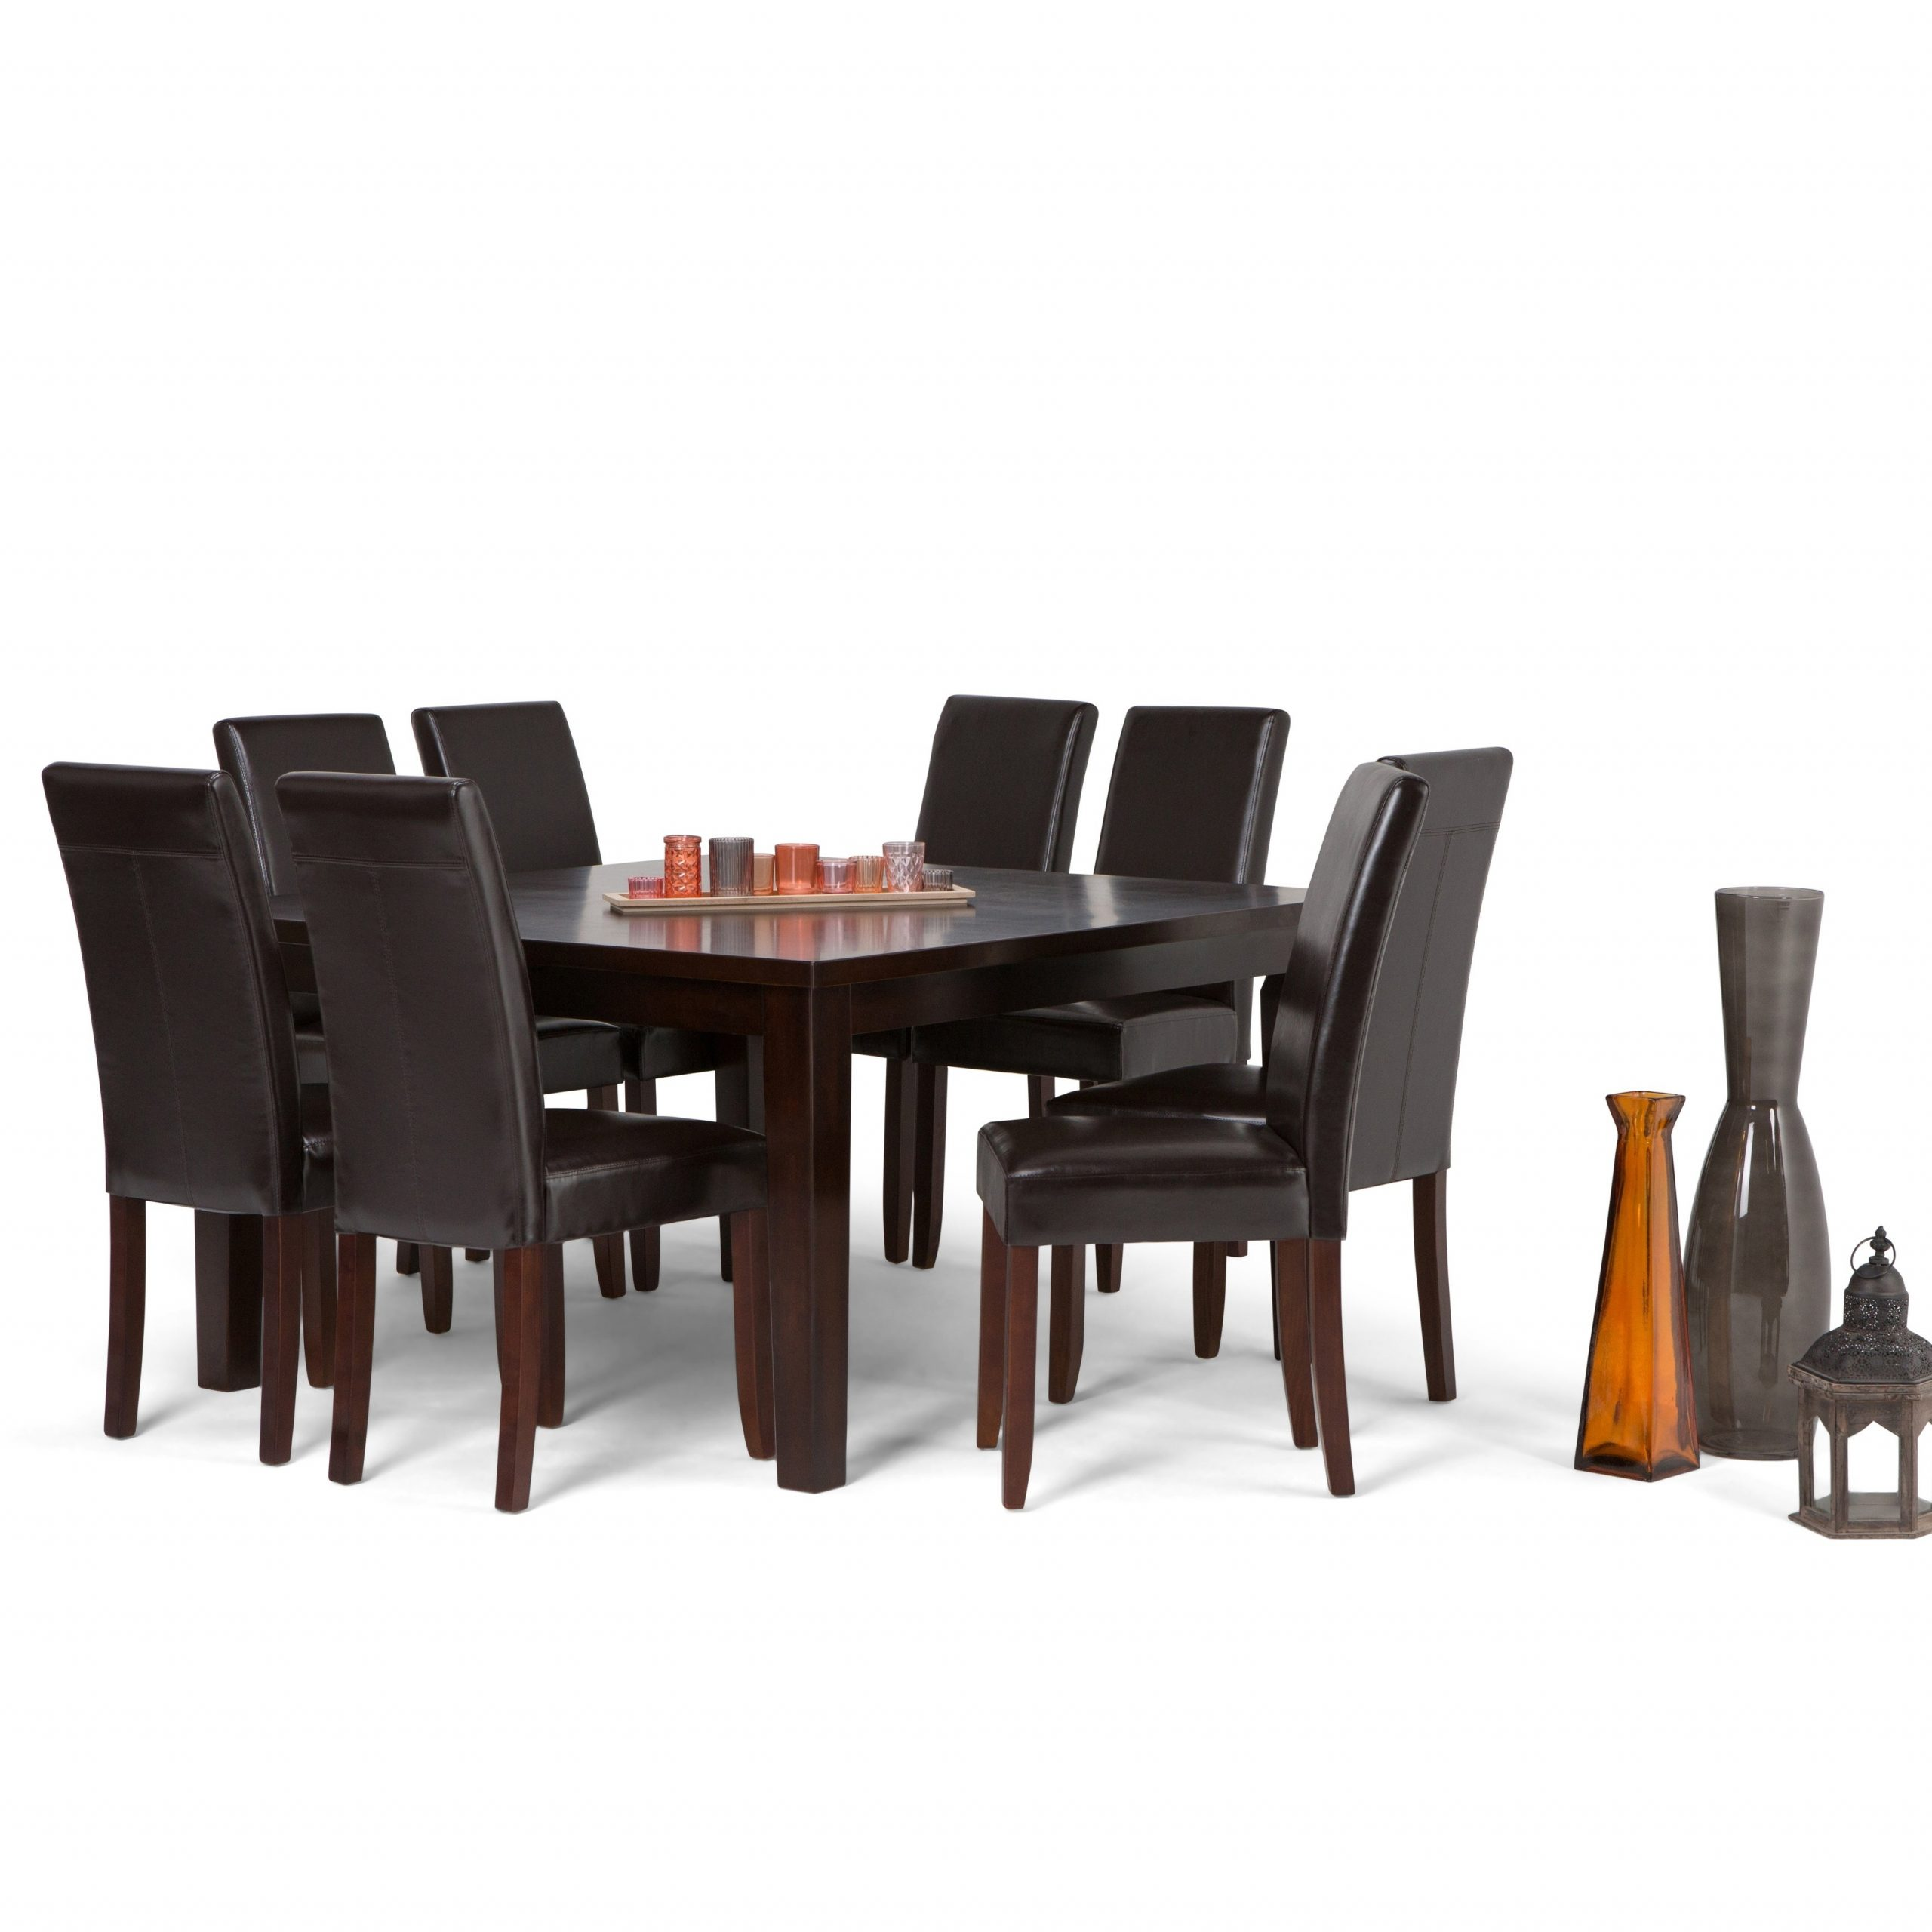 Wyndenhall Normandy Contemporary 9 Pc Dining Set With 8 Upholstered Parson Chairs And 54 Inch Wide Table Regarding Newest Normandy Extending Dining Tables (View 16 of 25)